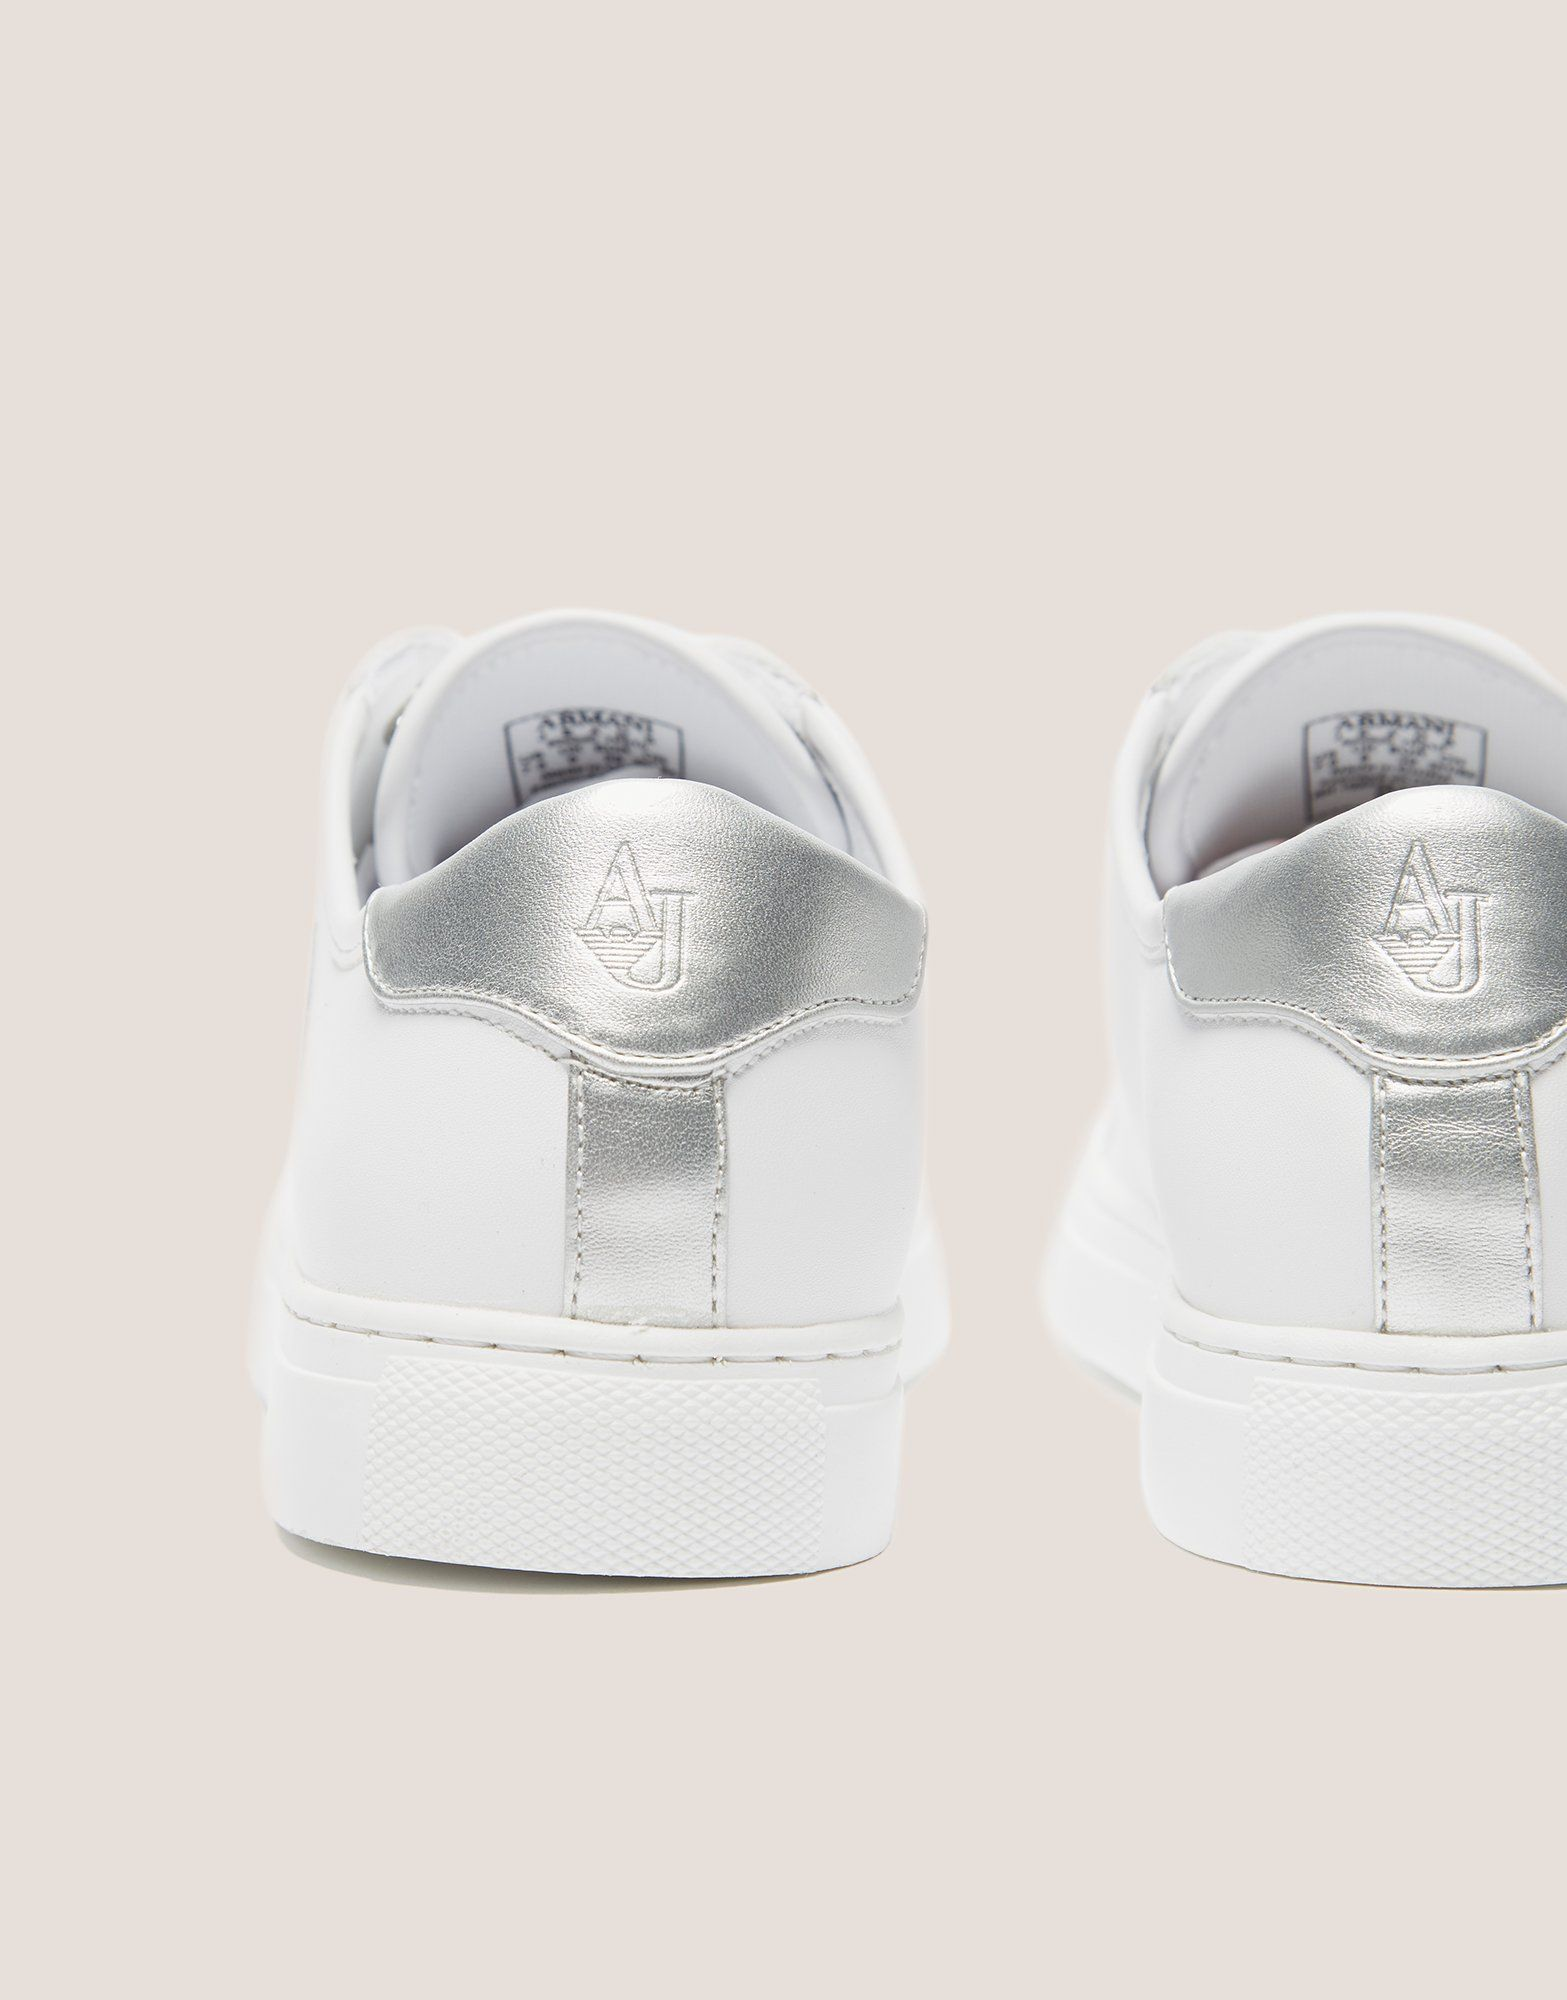 Armani Jeans Low Top Trainer